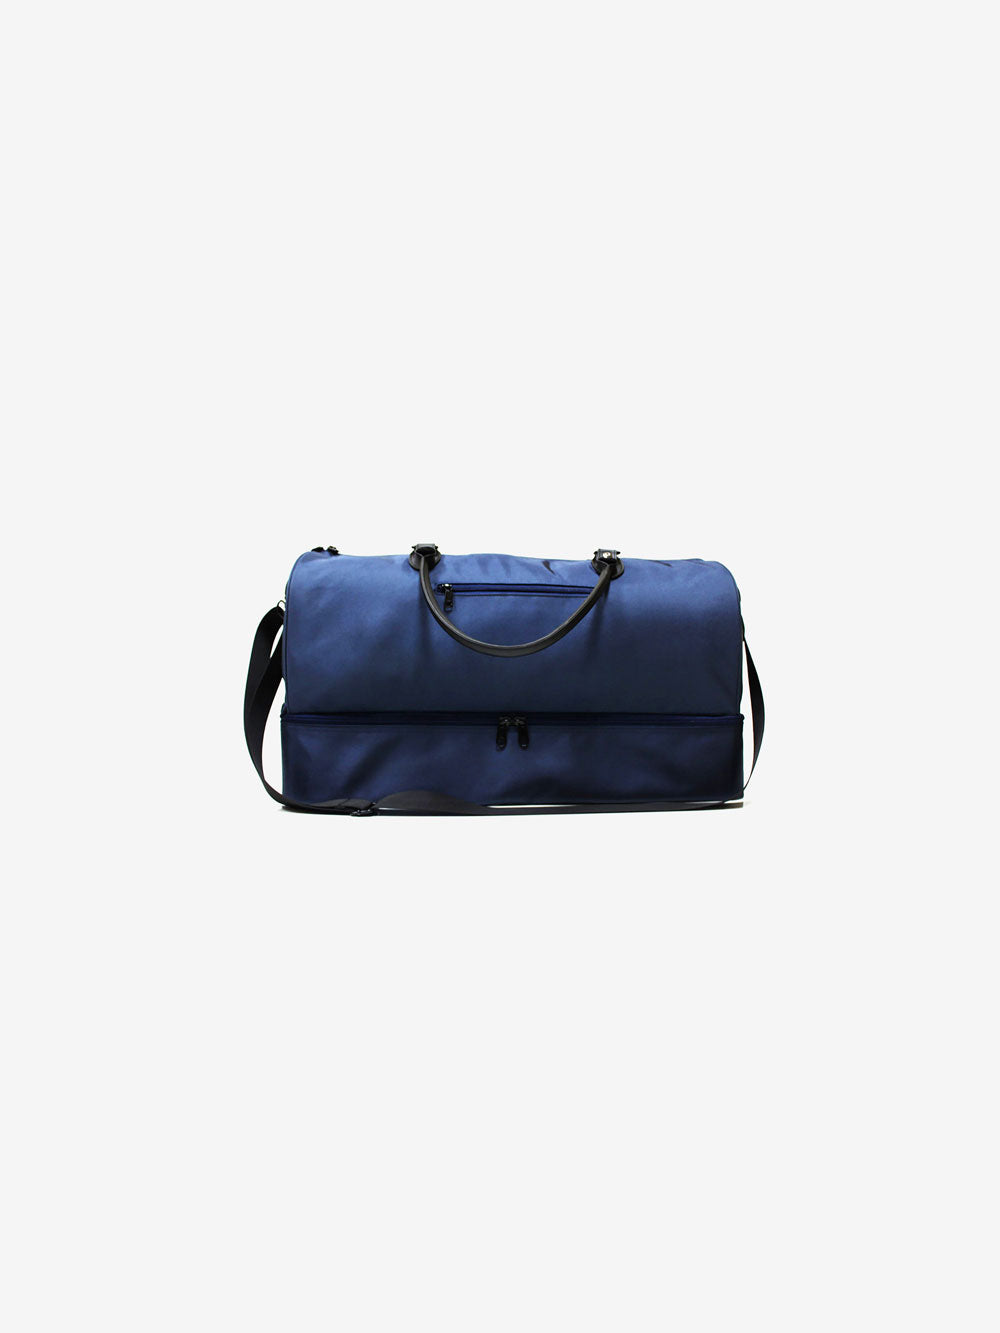 New North Duffel in Cobalt Blue